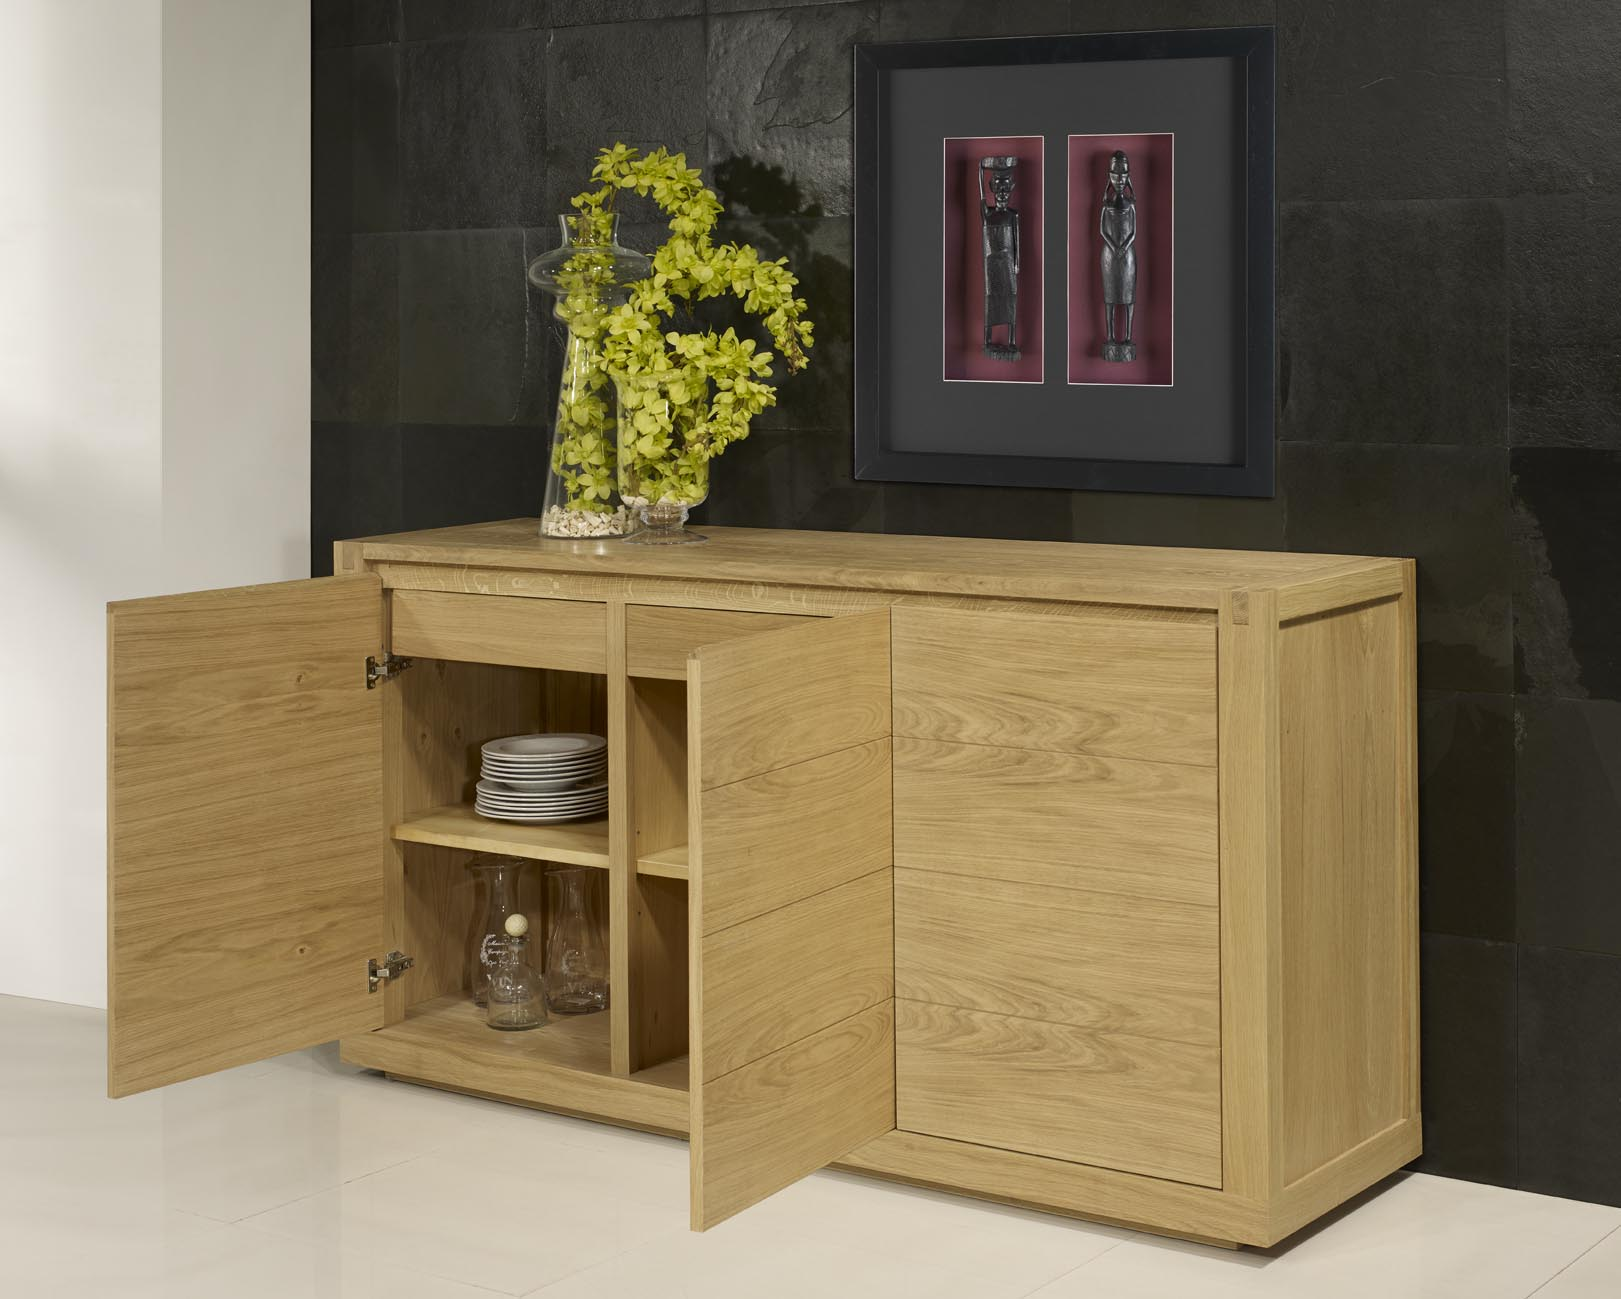 Buffet 3 portes mathis en ch ne de style contemporain finition ch ne bross n - Buffet bois massif contemporain ...